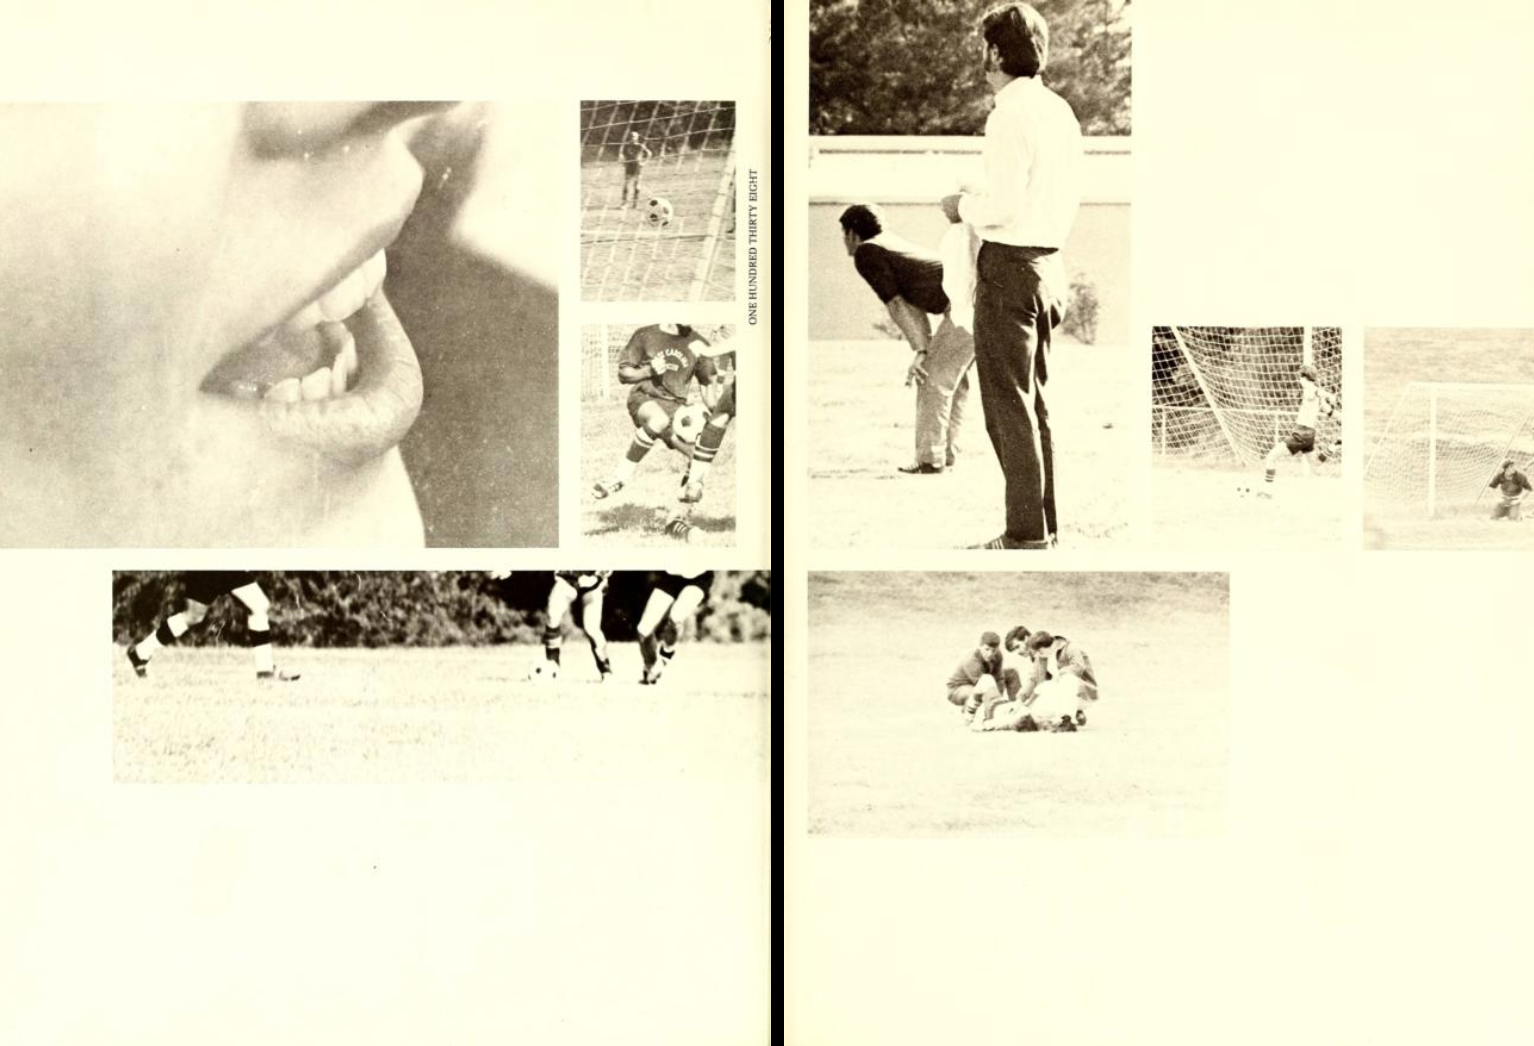 Two-page spread from the 1971 Methodist University yearbook Carillon. These pages show photos taken during a soccer game. One photo is a close up of a mouth cheering and another has the view of the soccer ball about to be kicked angled from the back of the goal netting.